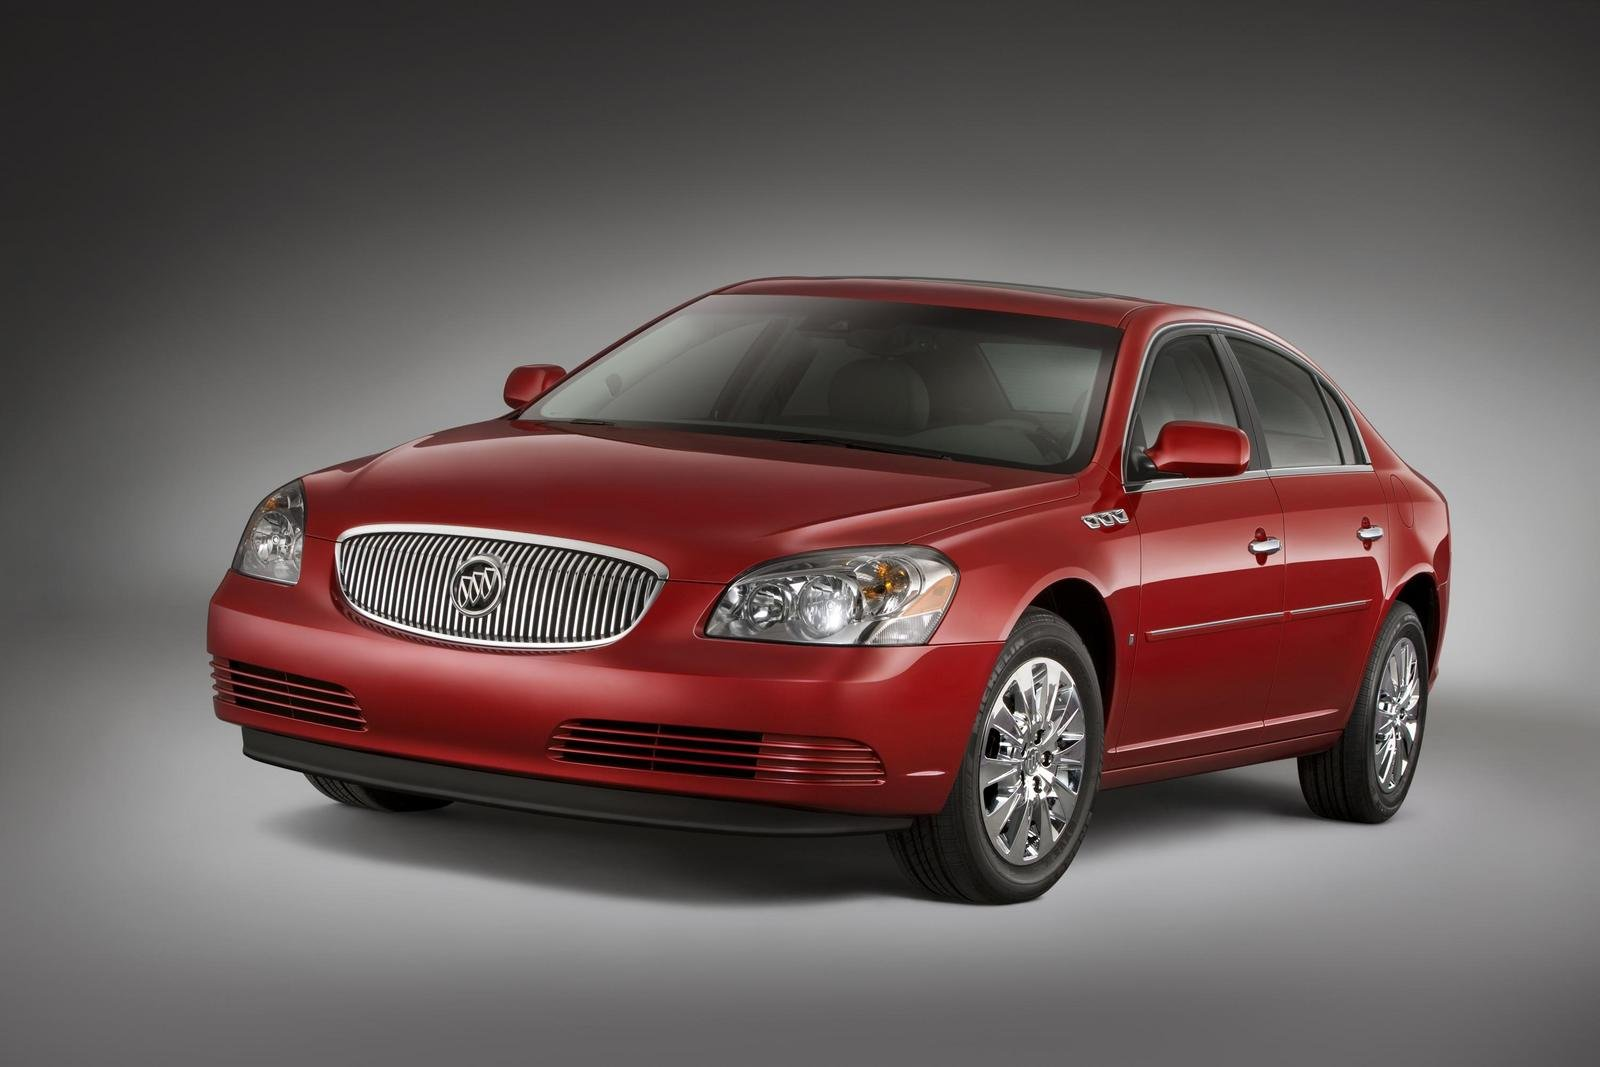 2008 buick lucerne cxl special edition review top speed. Black Bedroom Furniture Sets. Home Design Ideas